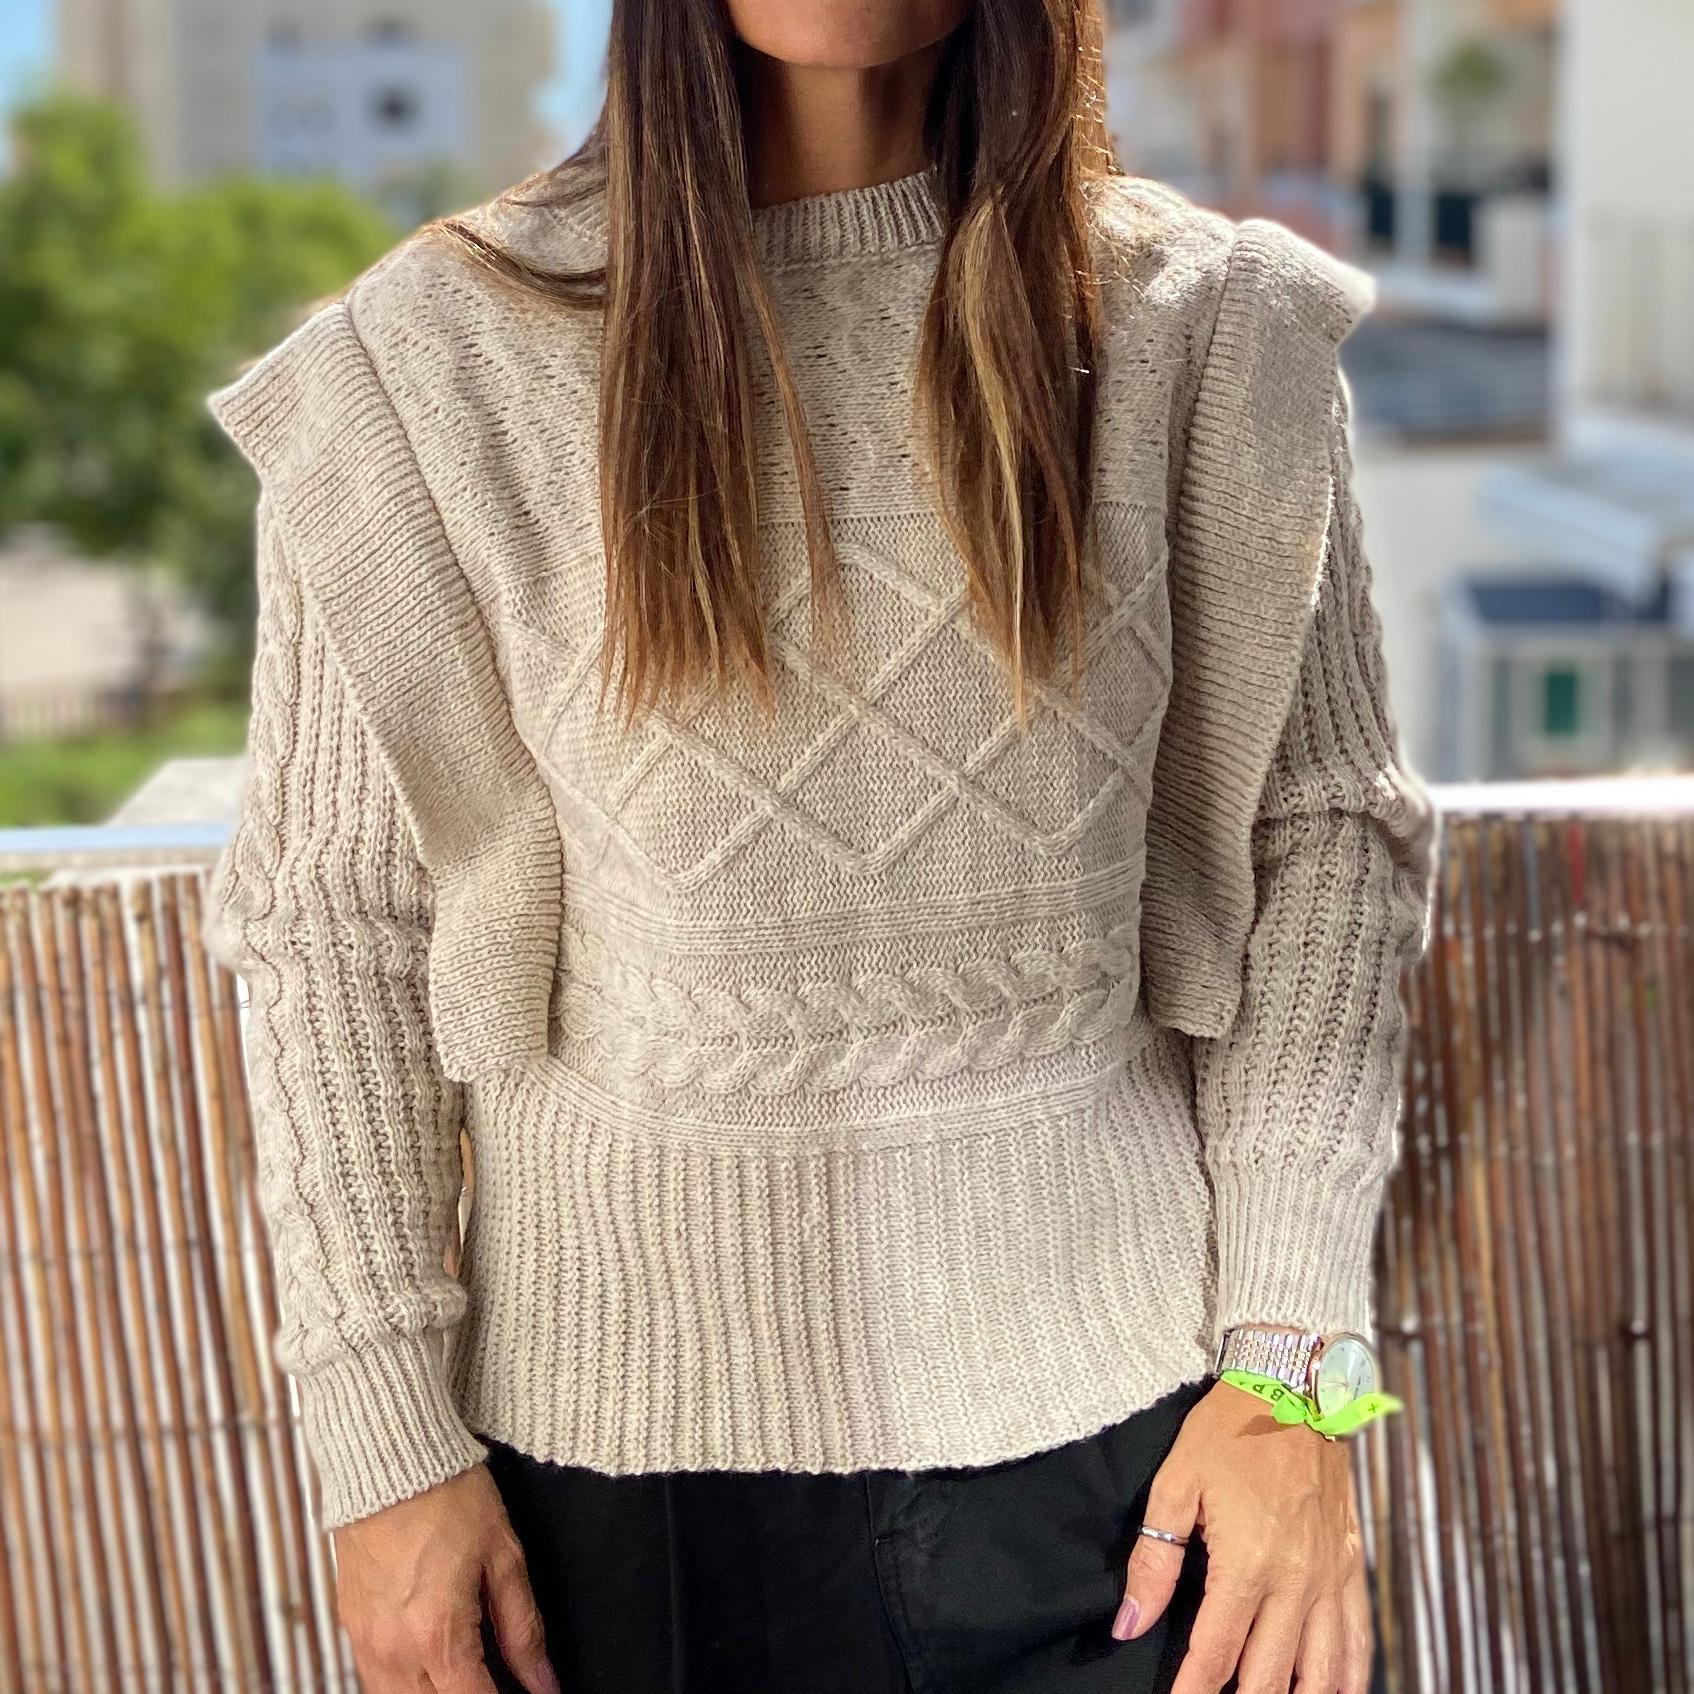 Camisola Fall Collection